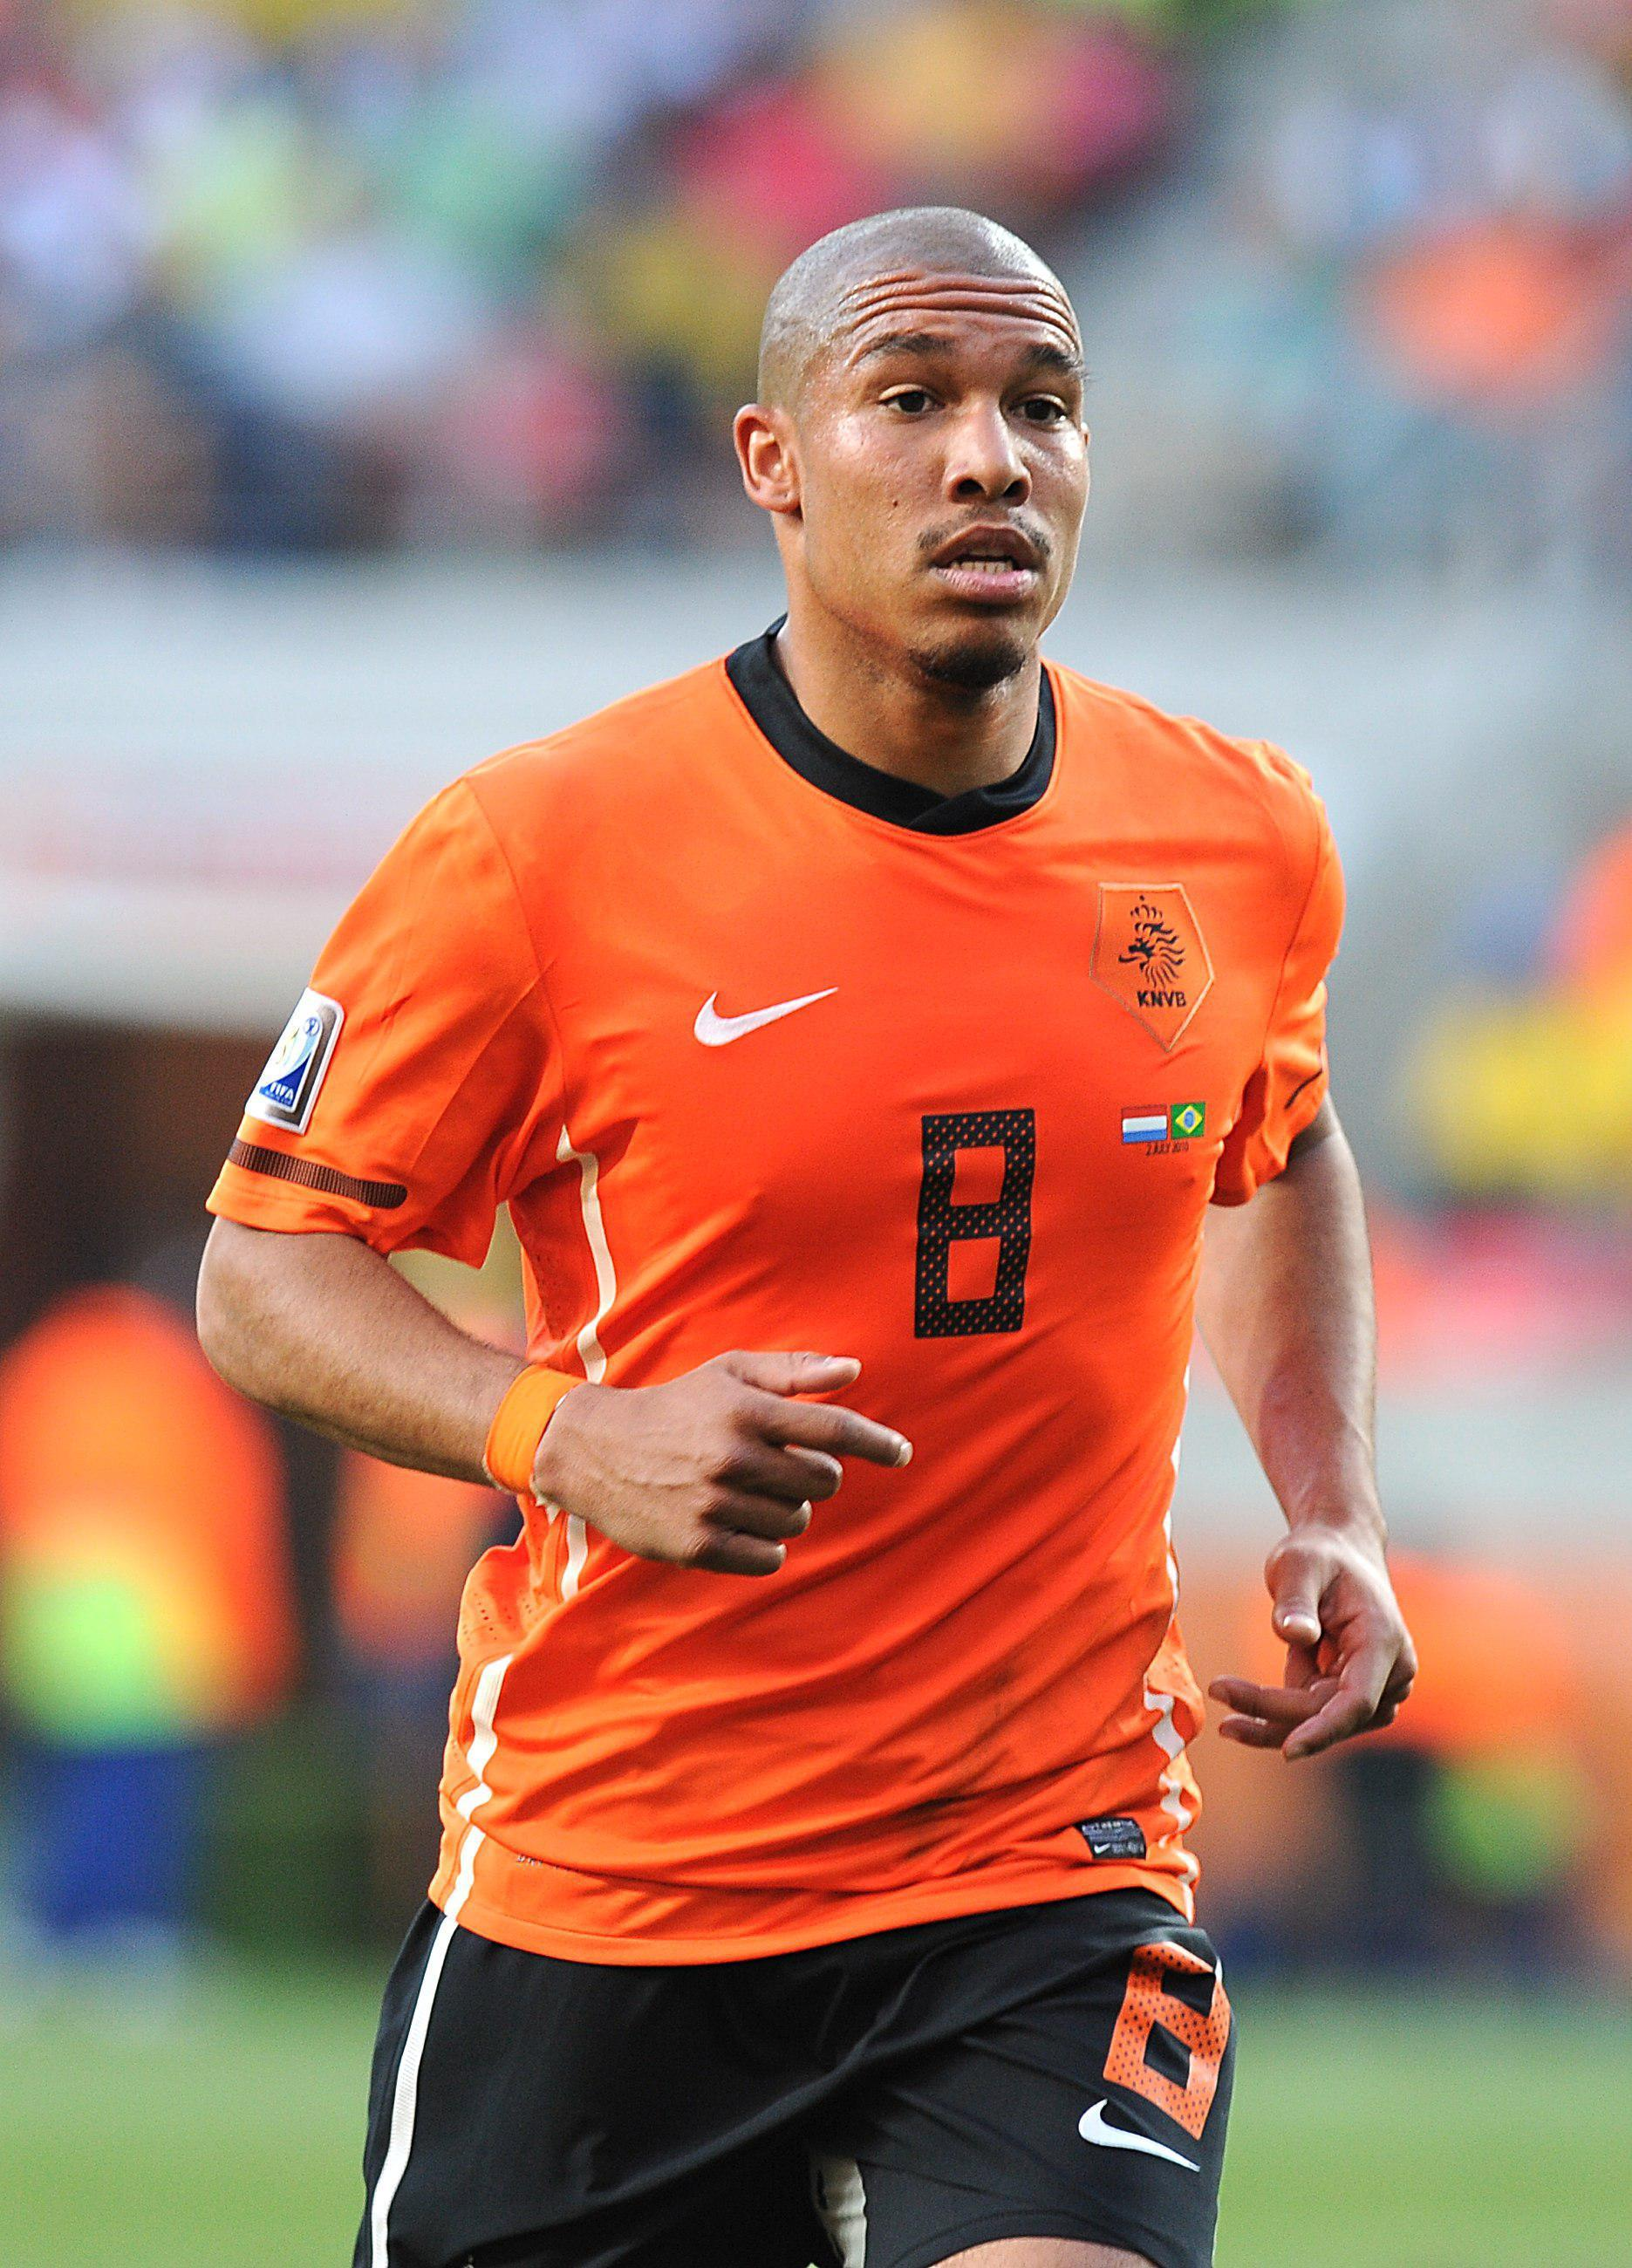 Ex-Manchester City star Nigel de Jong leaves Turkish giants Galatasaray to join Mainz